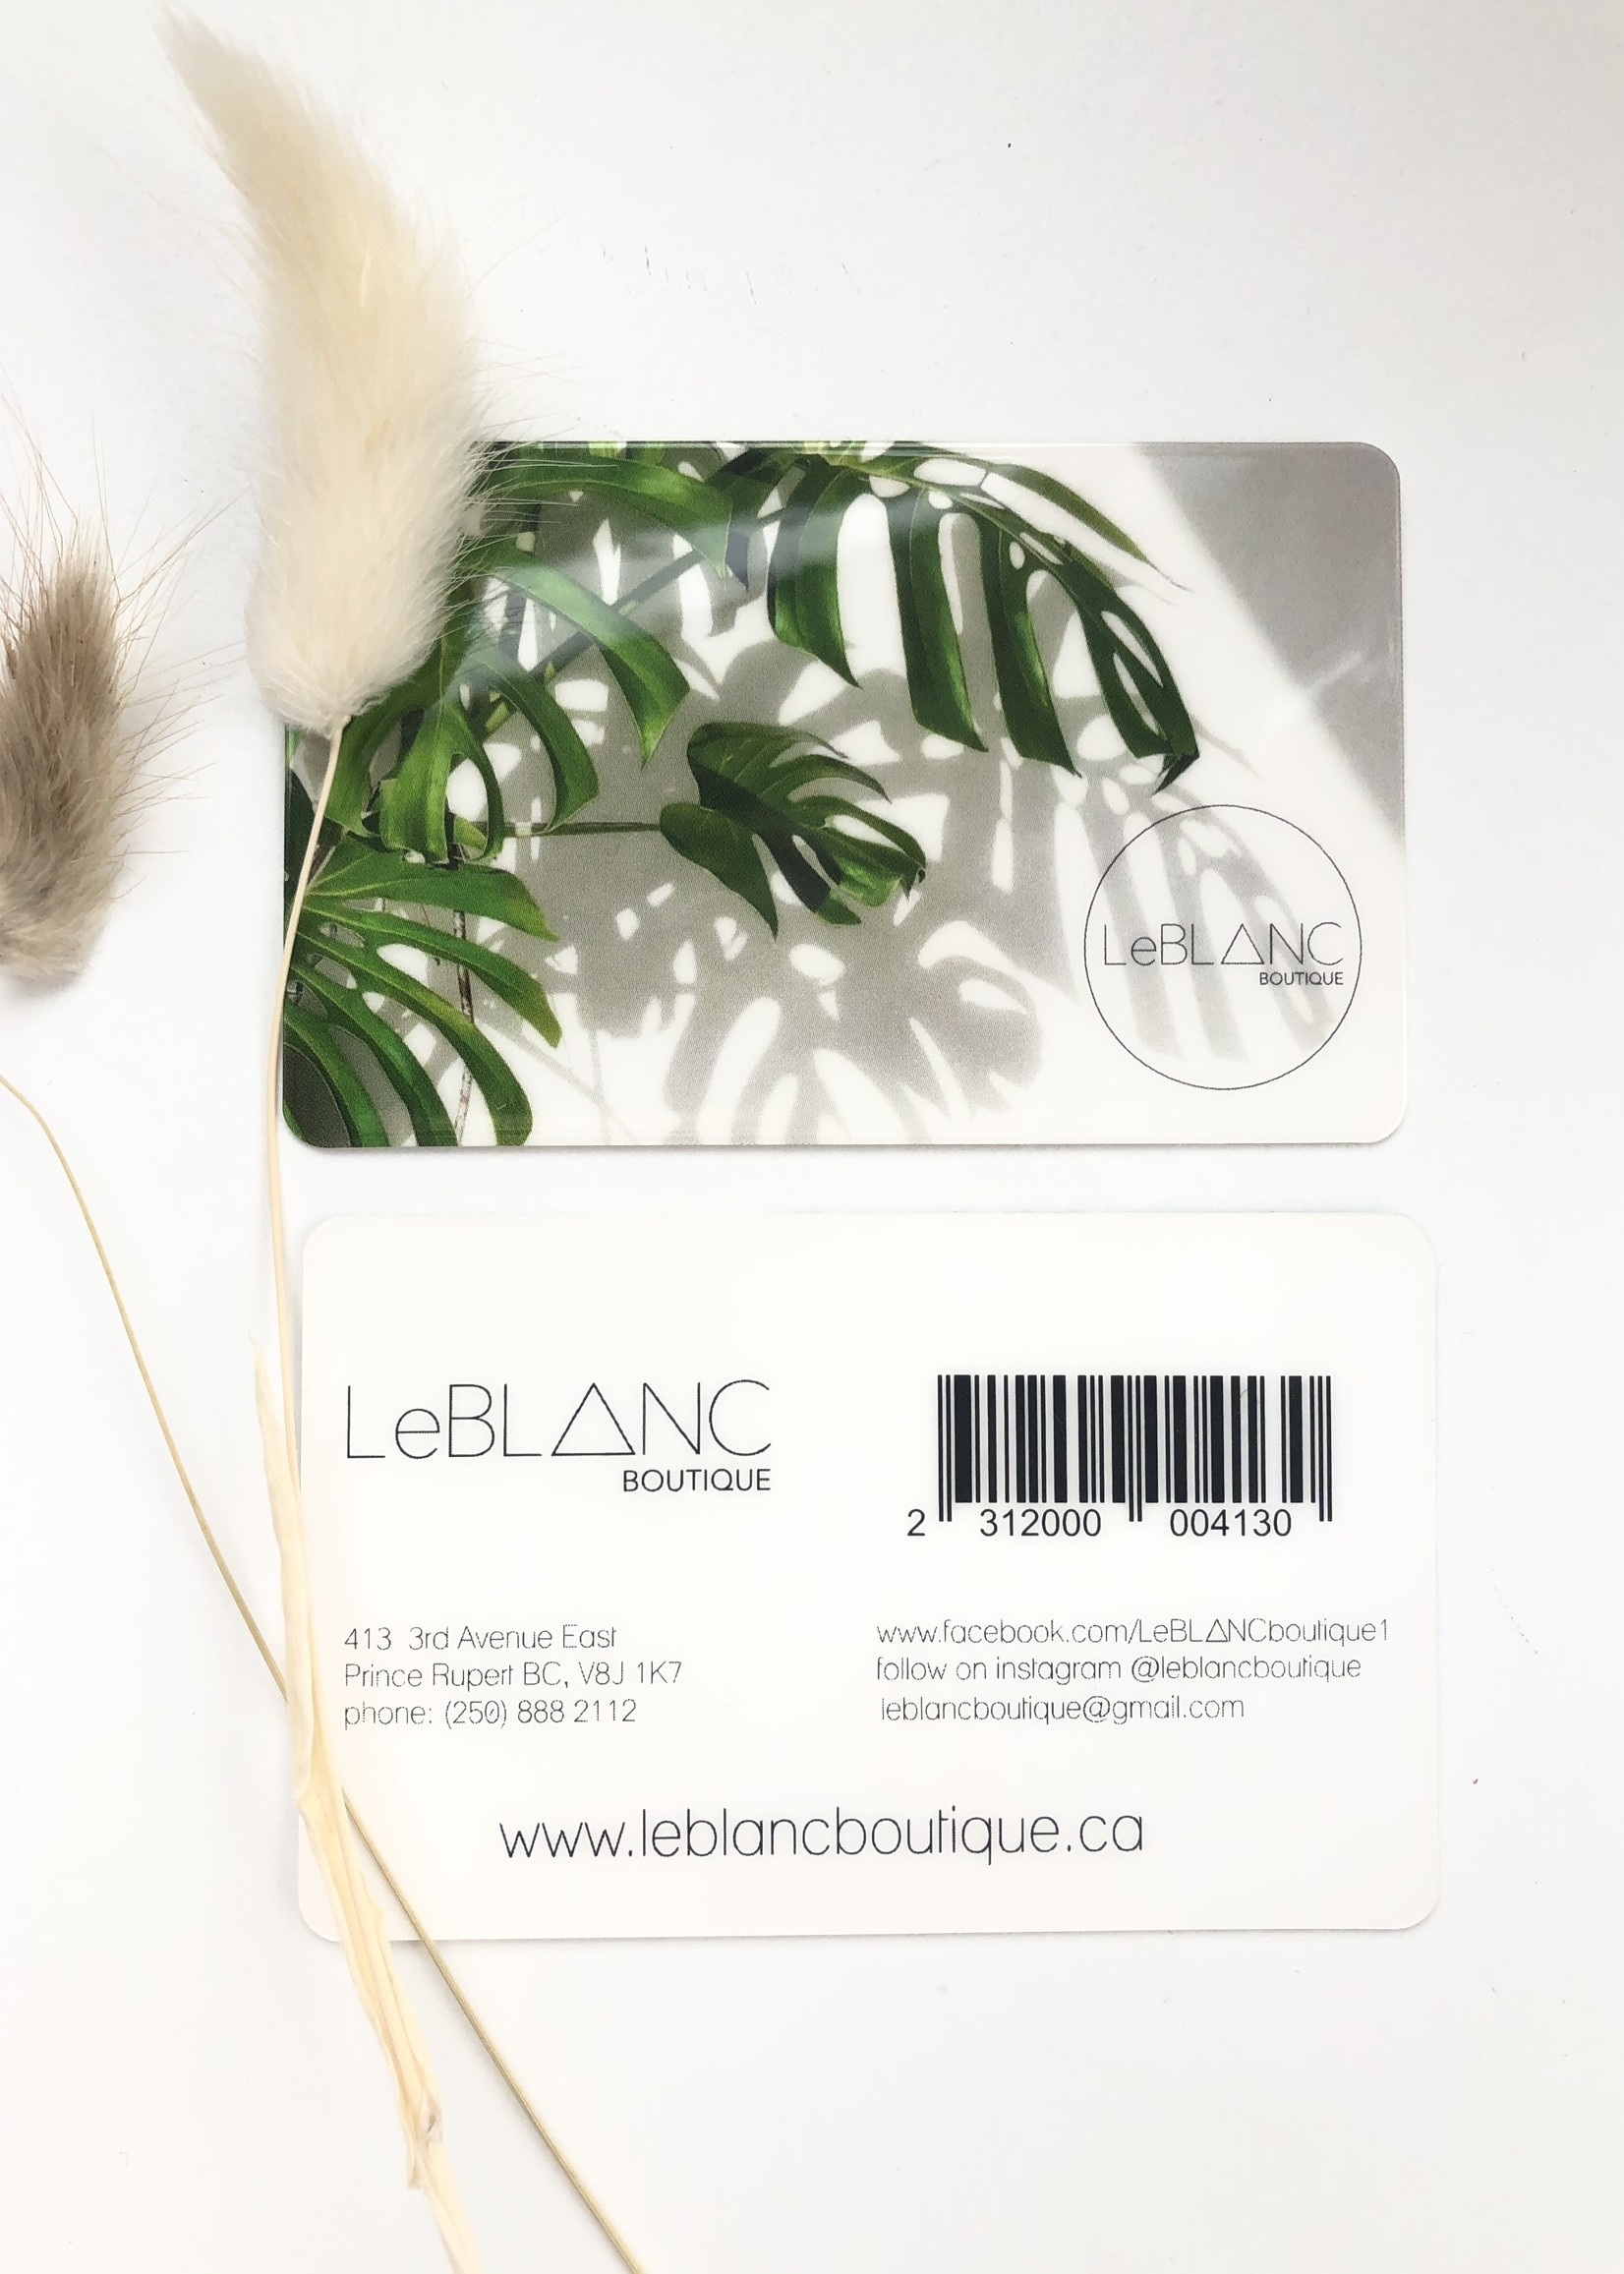 LeBLANC finds Gift Cards, more amount options